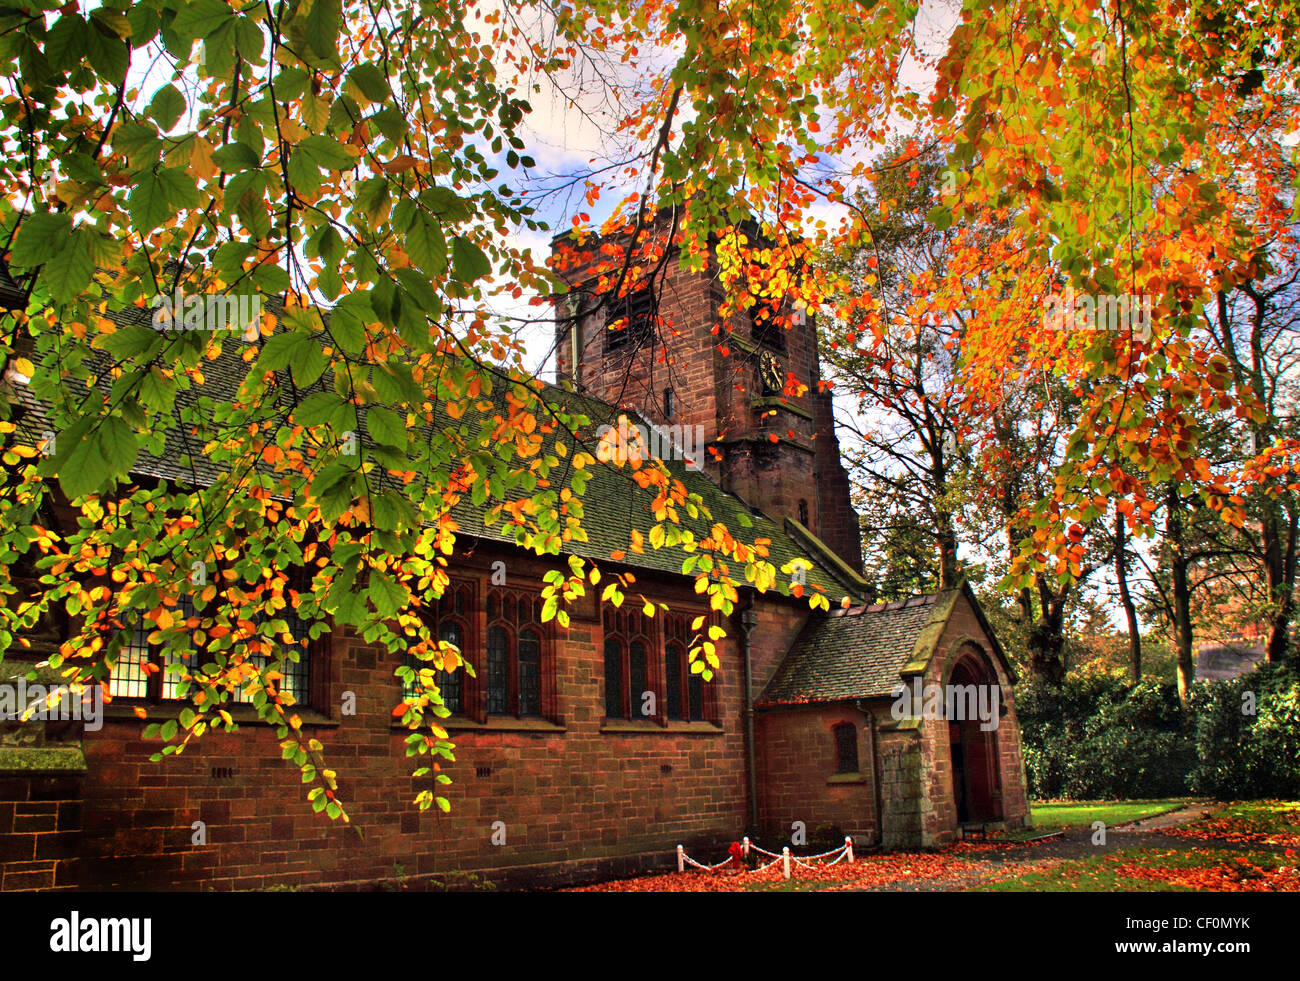 St,John,the,Evangelists,Church,Sandiway,in,Autumn,gotonysmith,The,fall,thefall,brown,leaves,stone,building,Anglican,Cuddington,designated,by,English,Heritage,as,a,Grade,II,listed,building,John,Douglas,1902,red,sandstone,with,a,Lakeland,slate,roof,tower,is,a,door,to,a,projecting,stair,turret,St John the Evangelists Church Sandiway.jpg Norley rd Road,gotonysmith,Buy Pictures of,Buy Images Of